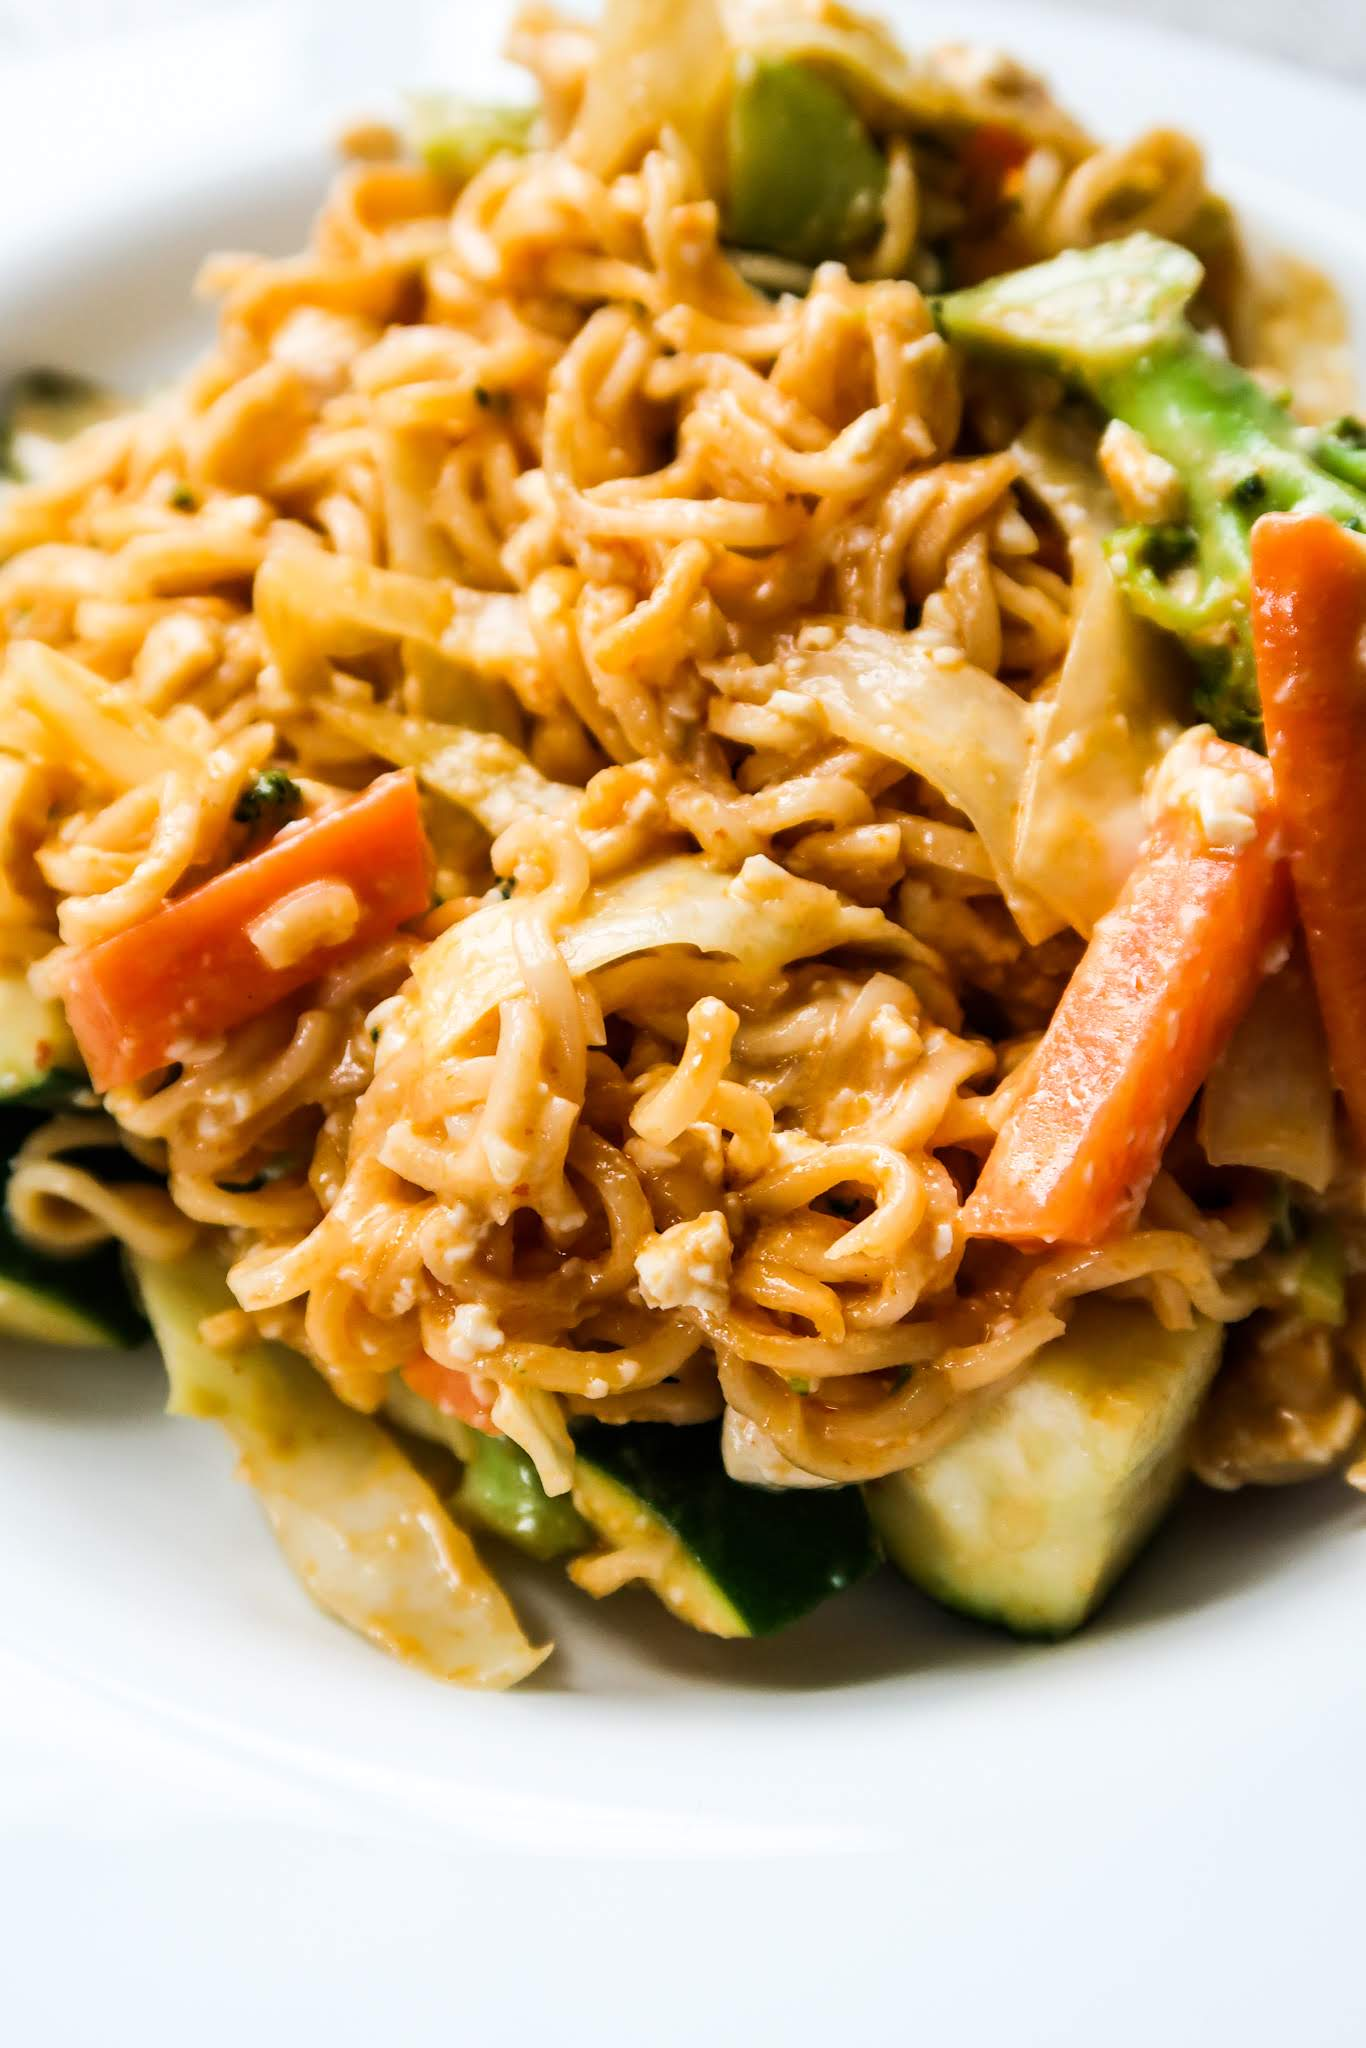 15-minute red curry noodles! An easy healthy dinner recipe that is absolutely divine! Filled with vegetables and tofu this vegan recipe is healthy, quick and warming for dinner! This vegan dinner recipe can also be made gluten free by using gluten-free noodles.